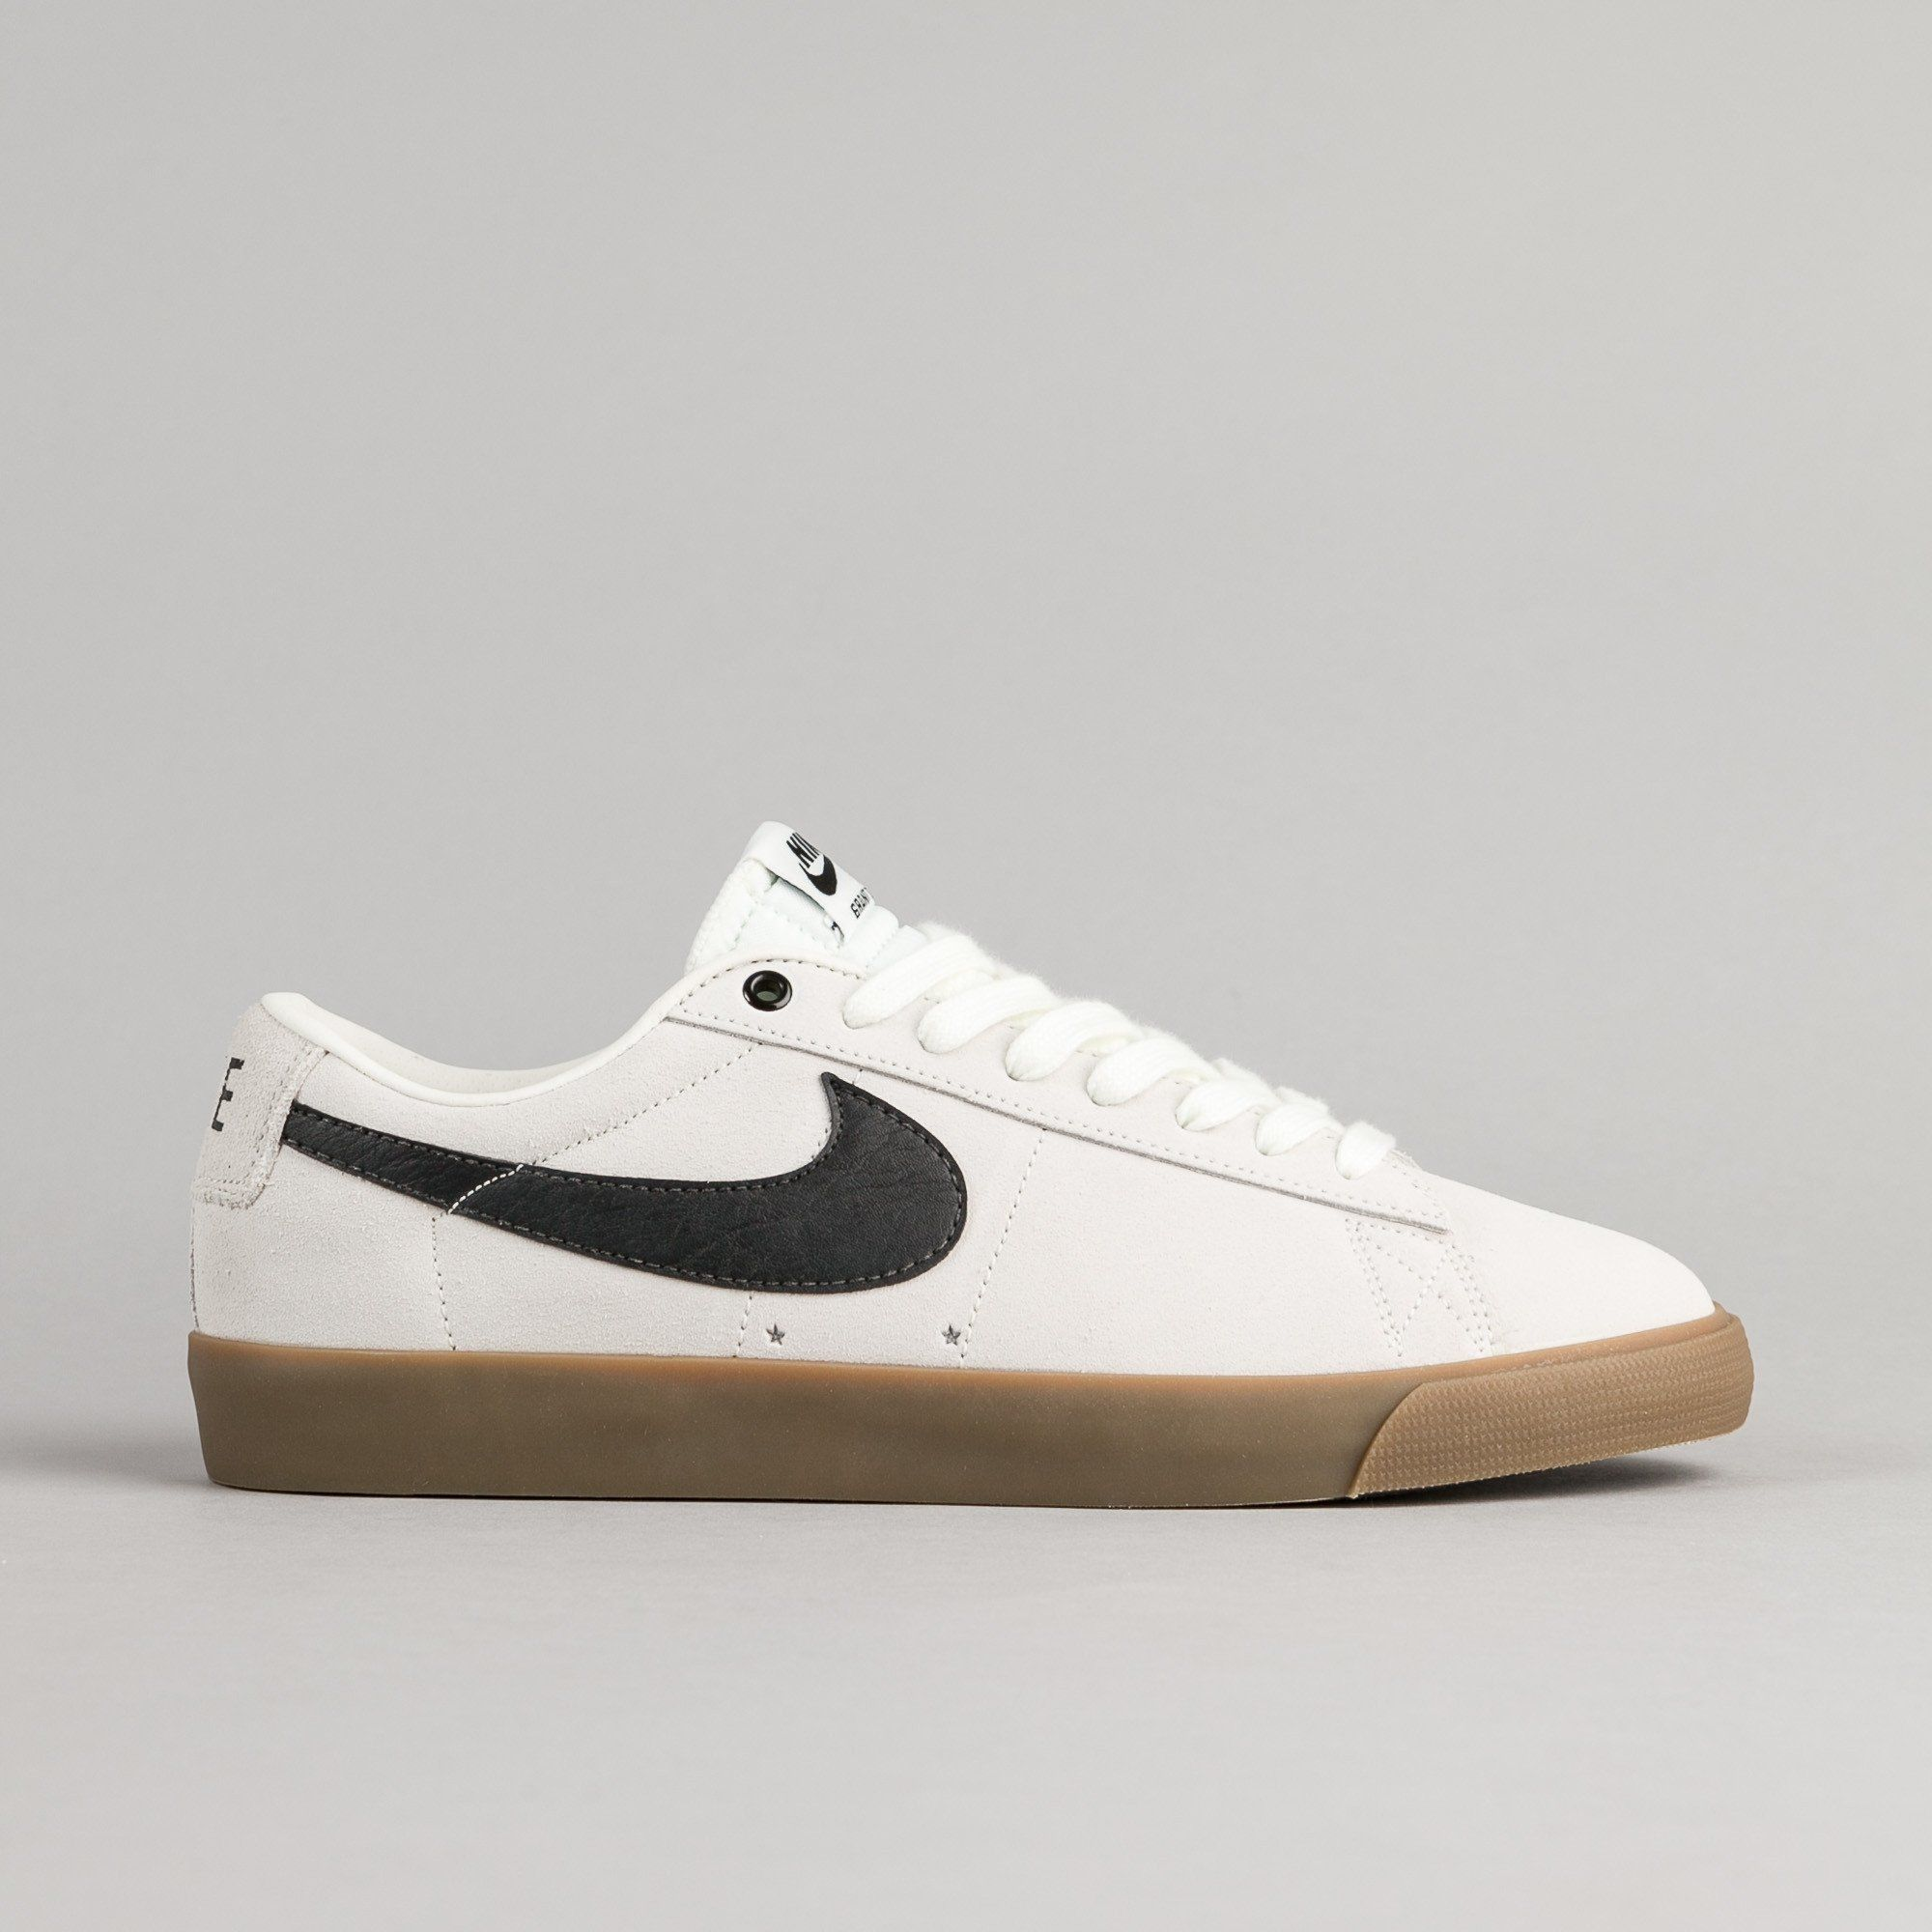 nike blazer low gt qs shoes for women